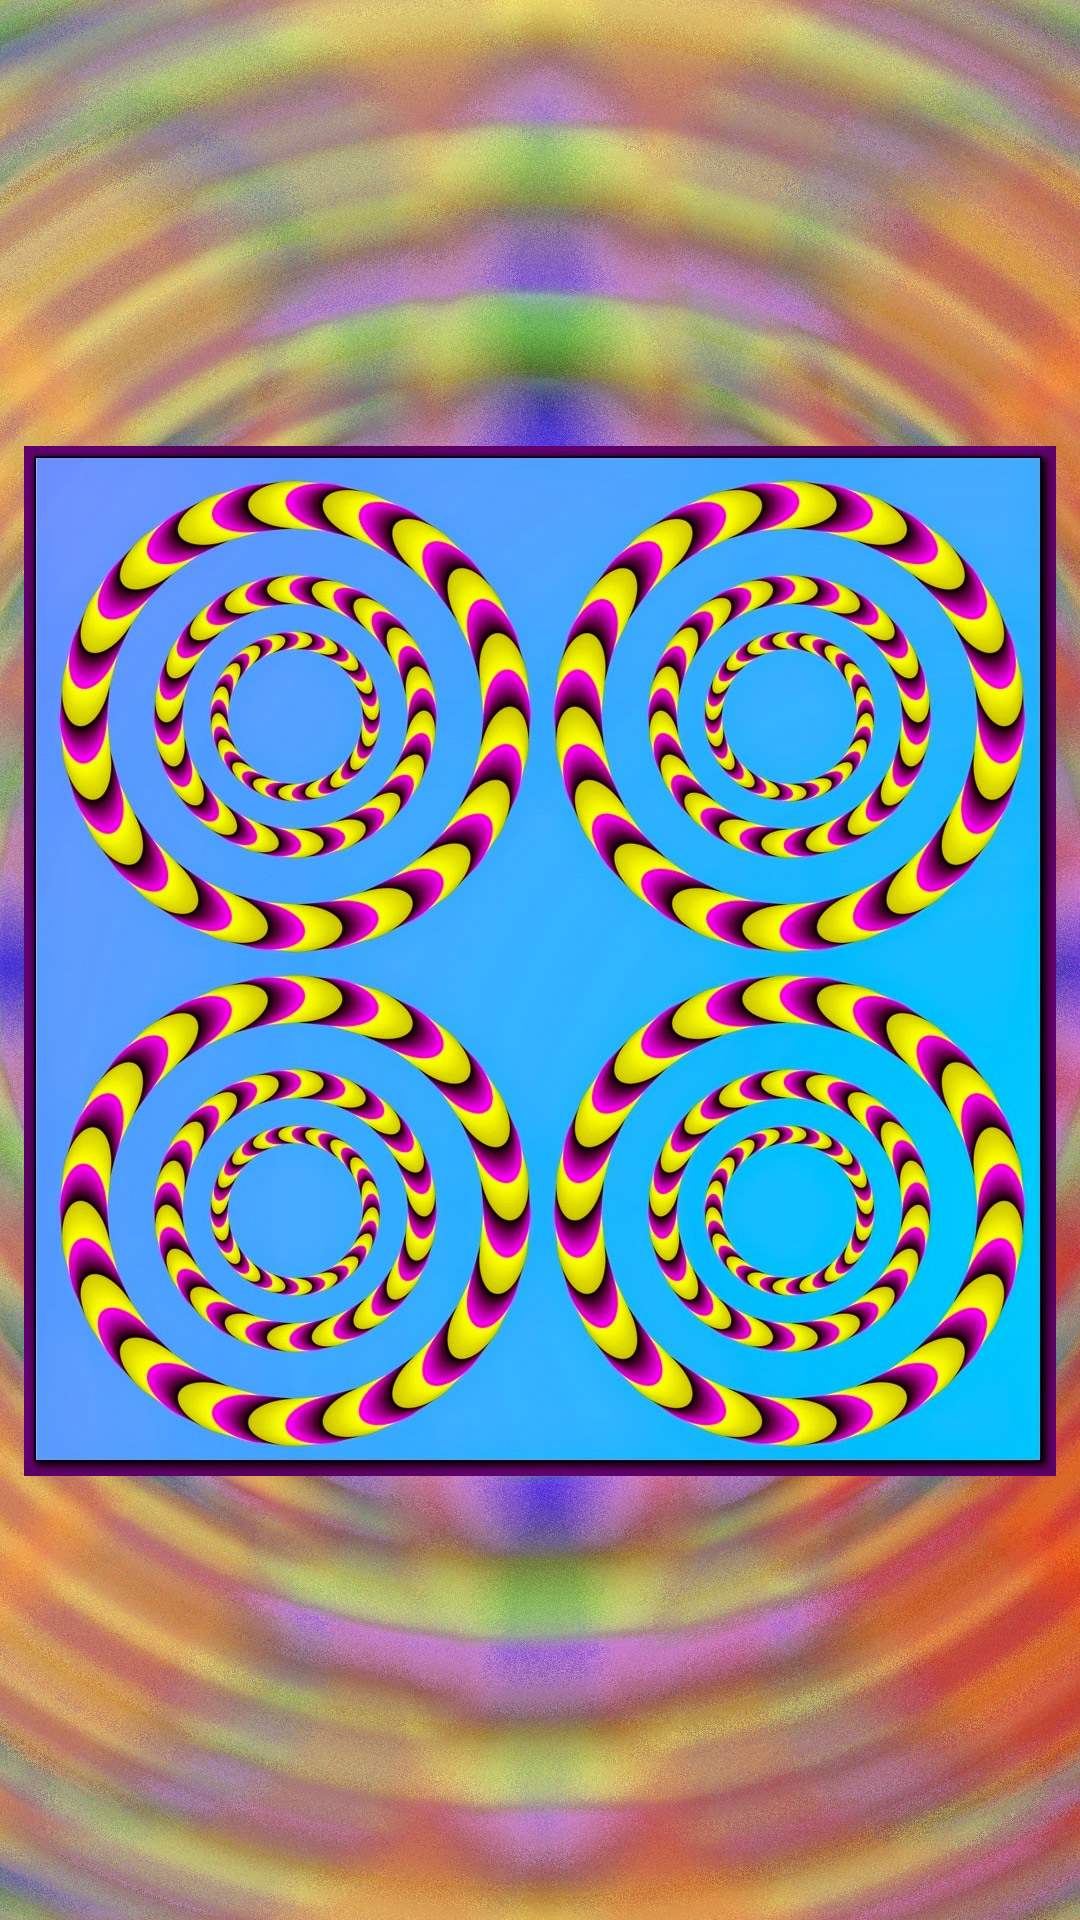 Create Animated Wallpaper Trippy Optical Illusions That Appear To Be Animated Use